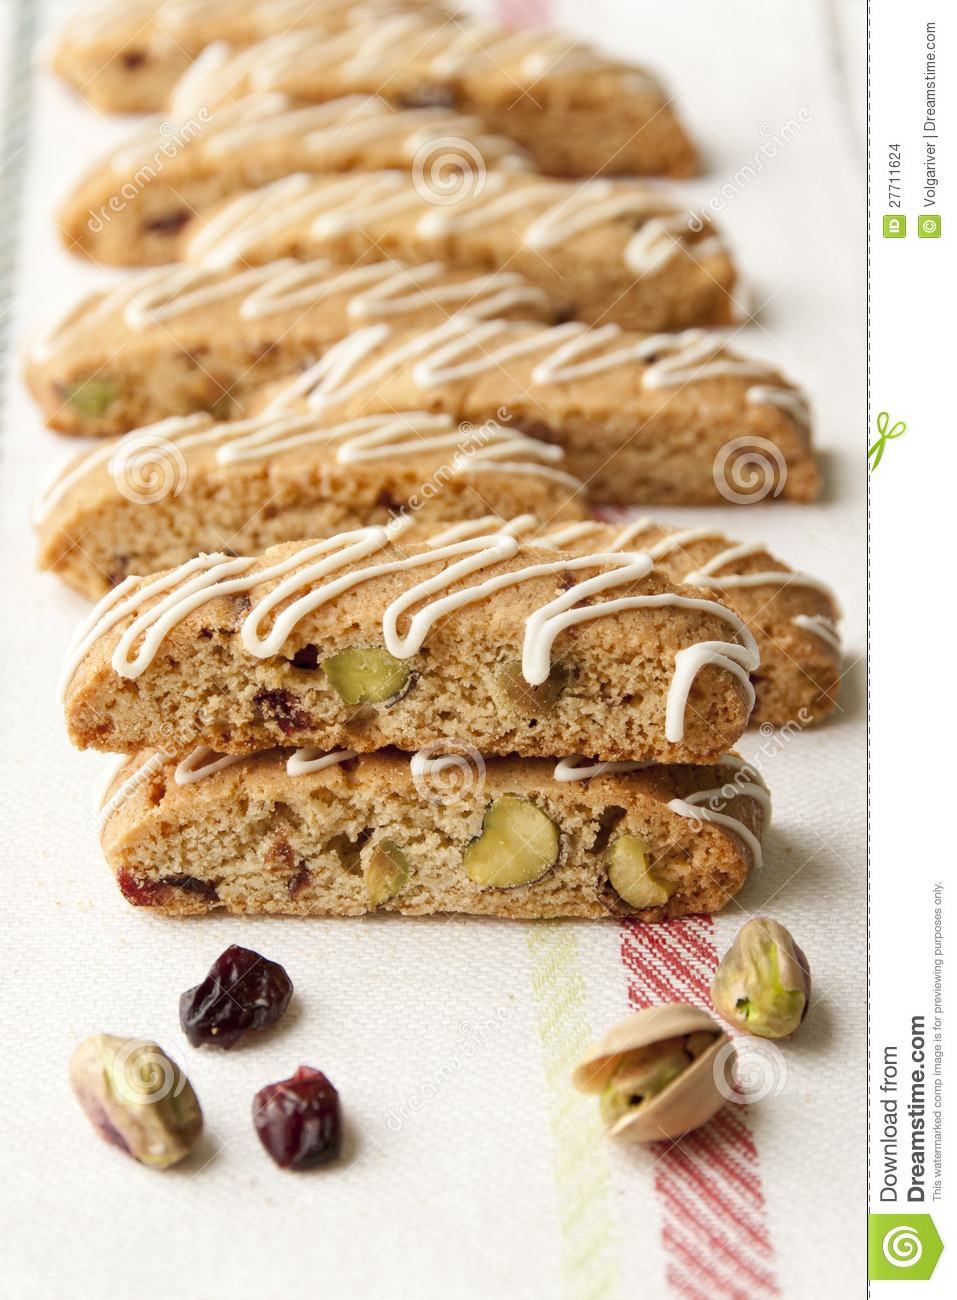 Biscotti with pistachio and cranberry.